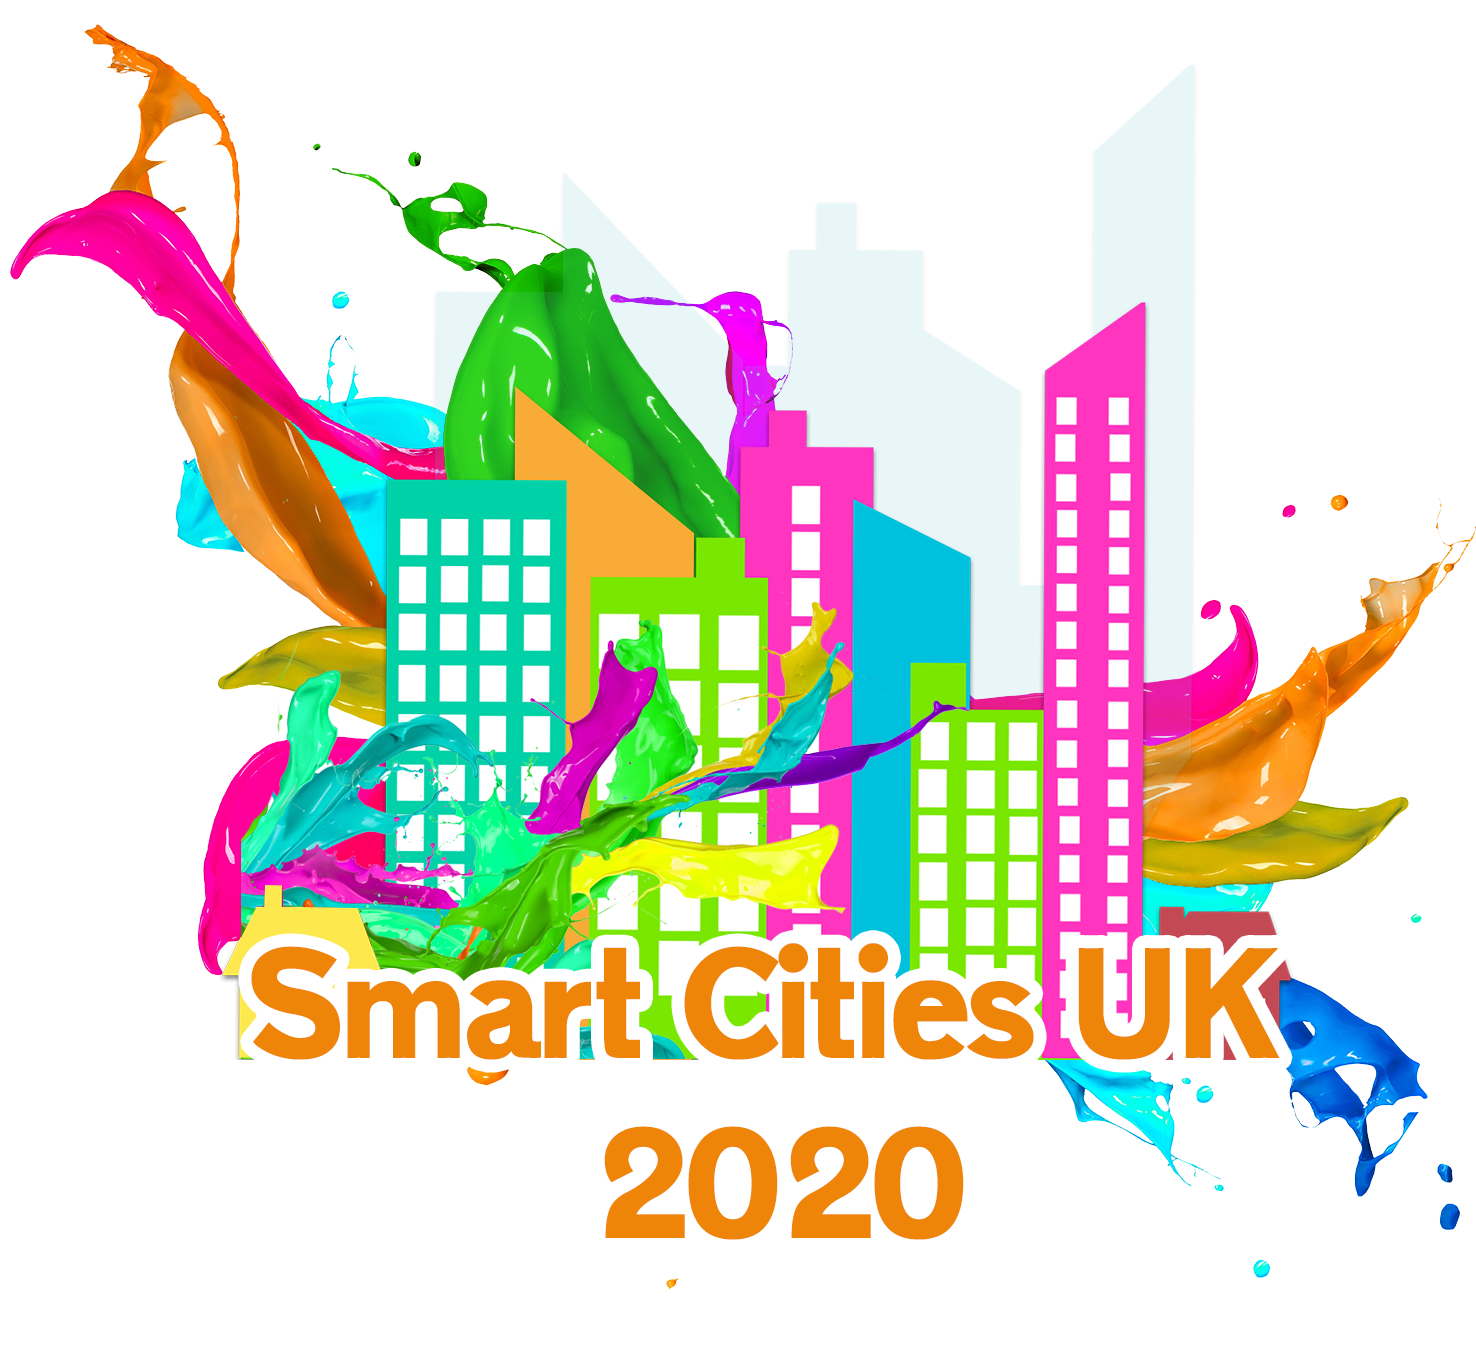 Smart Cities UK 2020